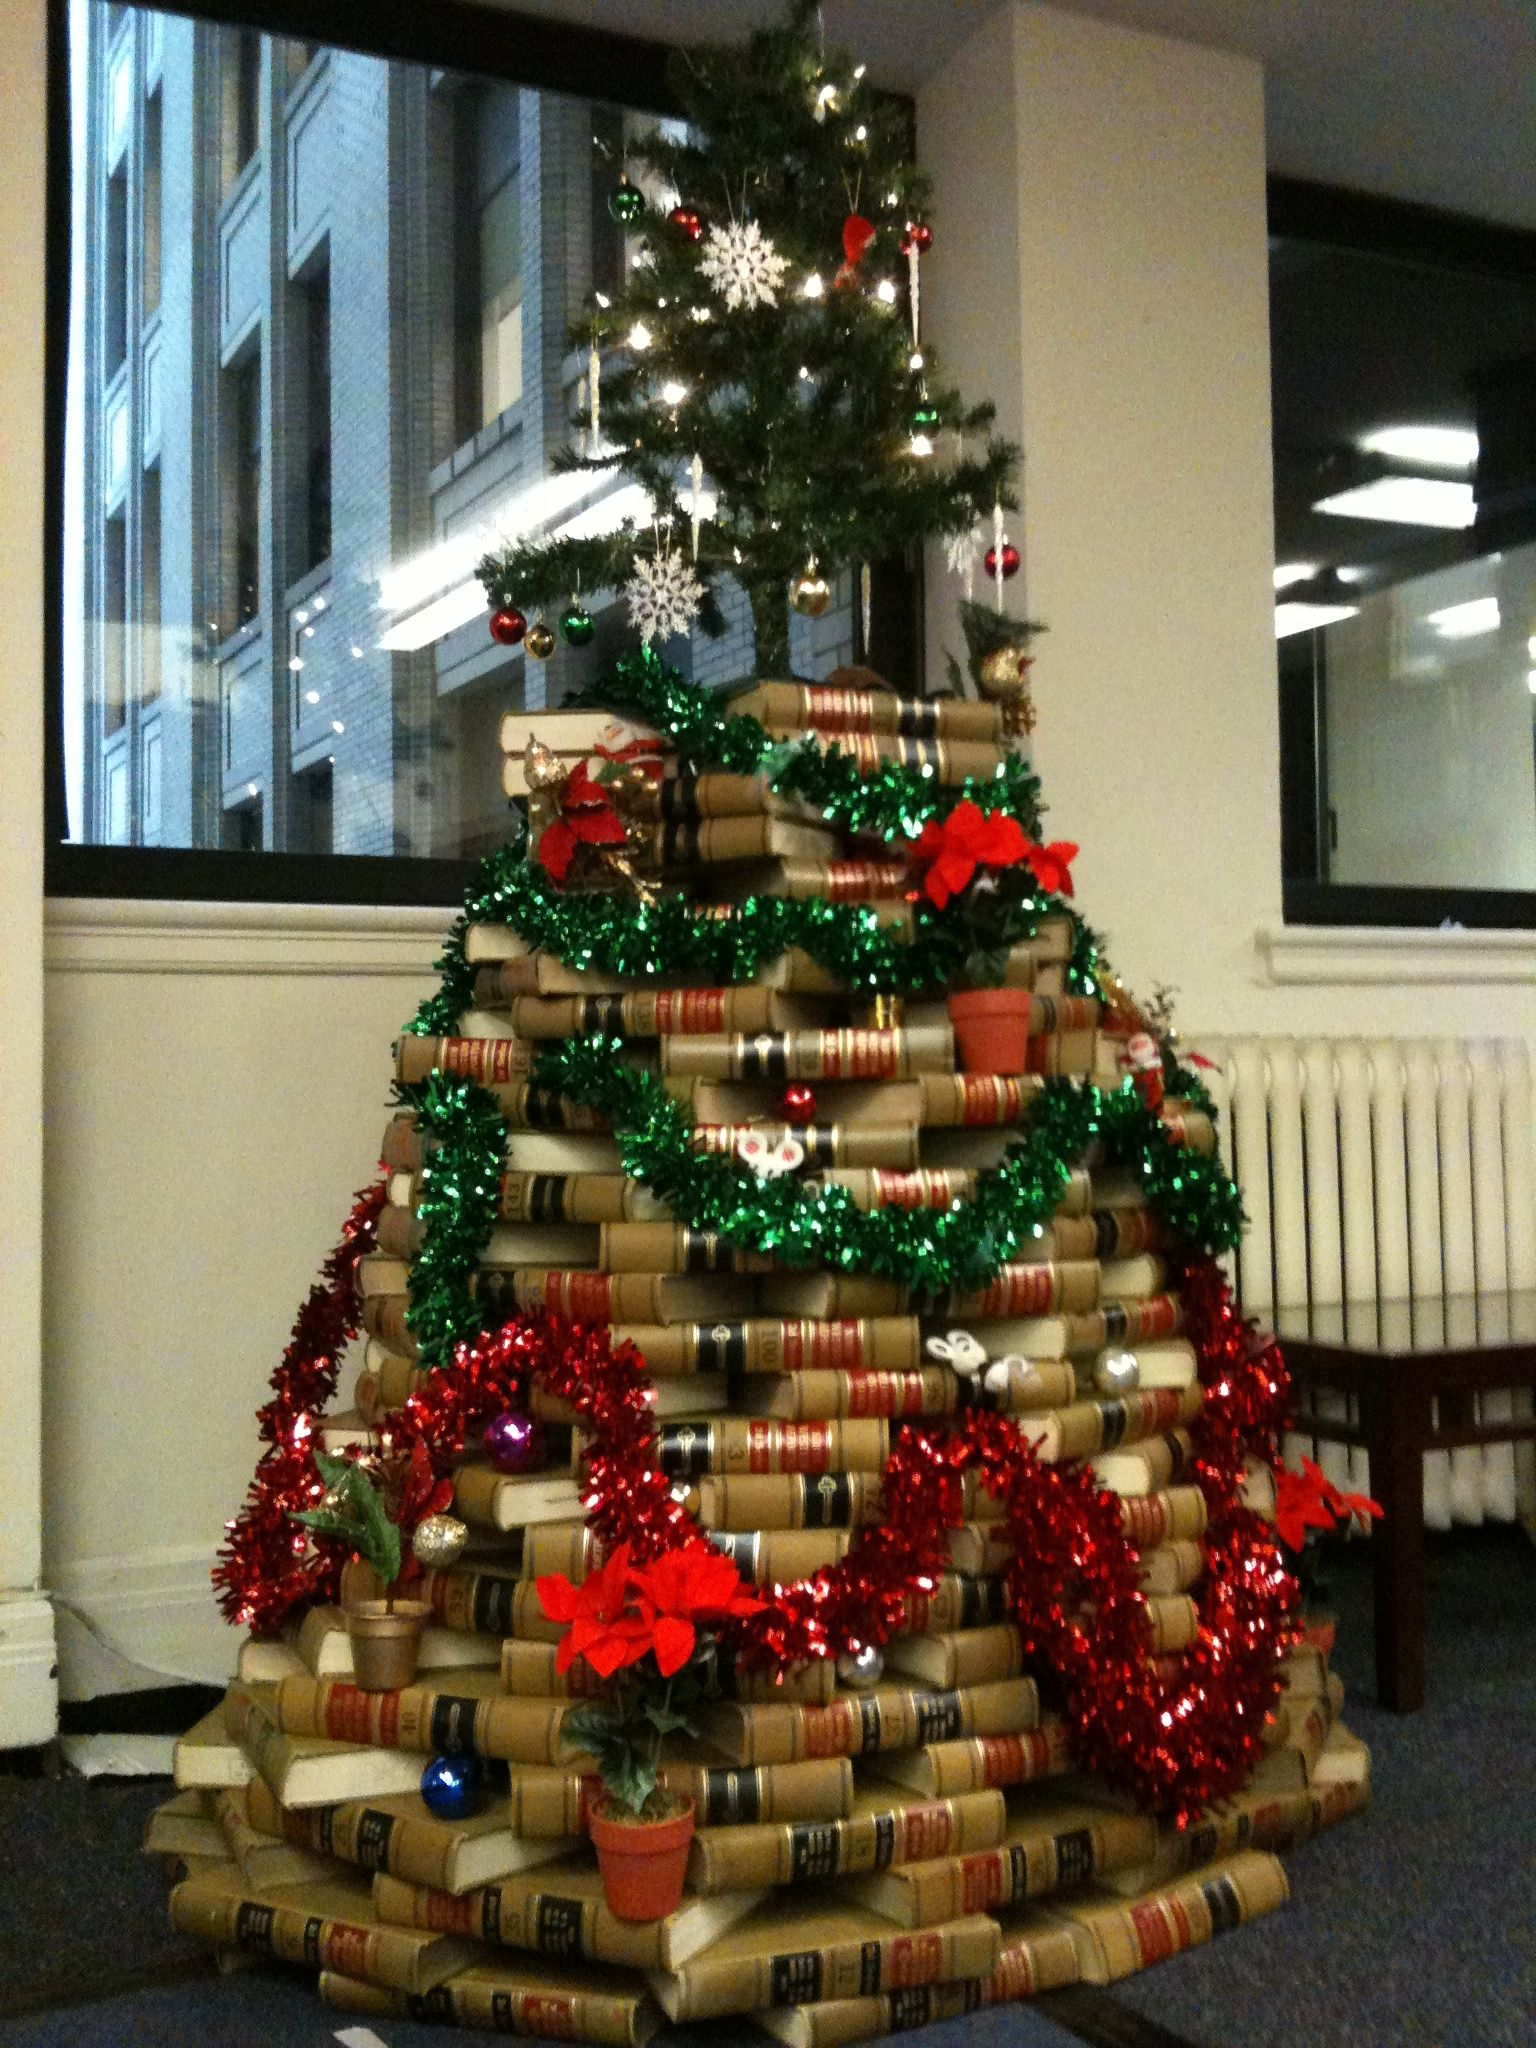 Ilibrarian News And Resources On Library 2 0 And The Information Revolution Teach For America Happy Holidays Christmas Tree